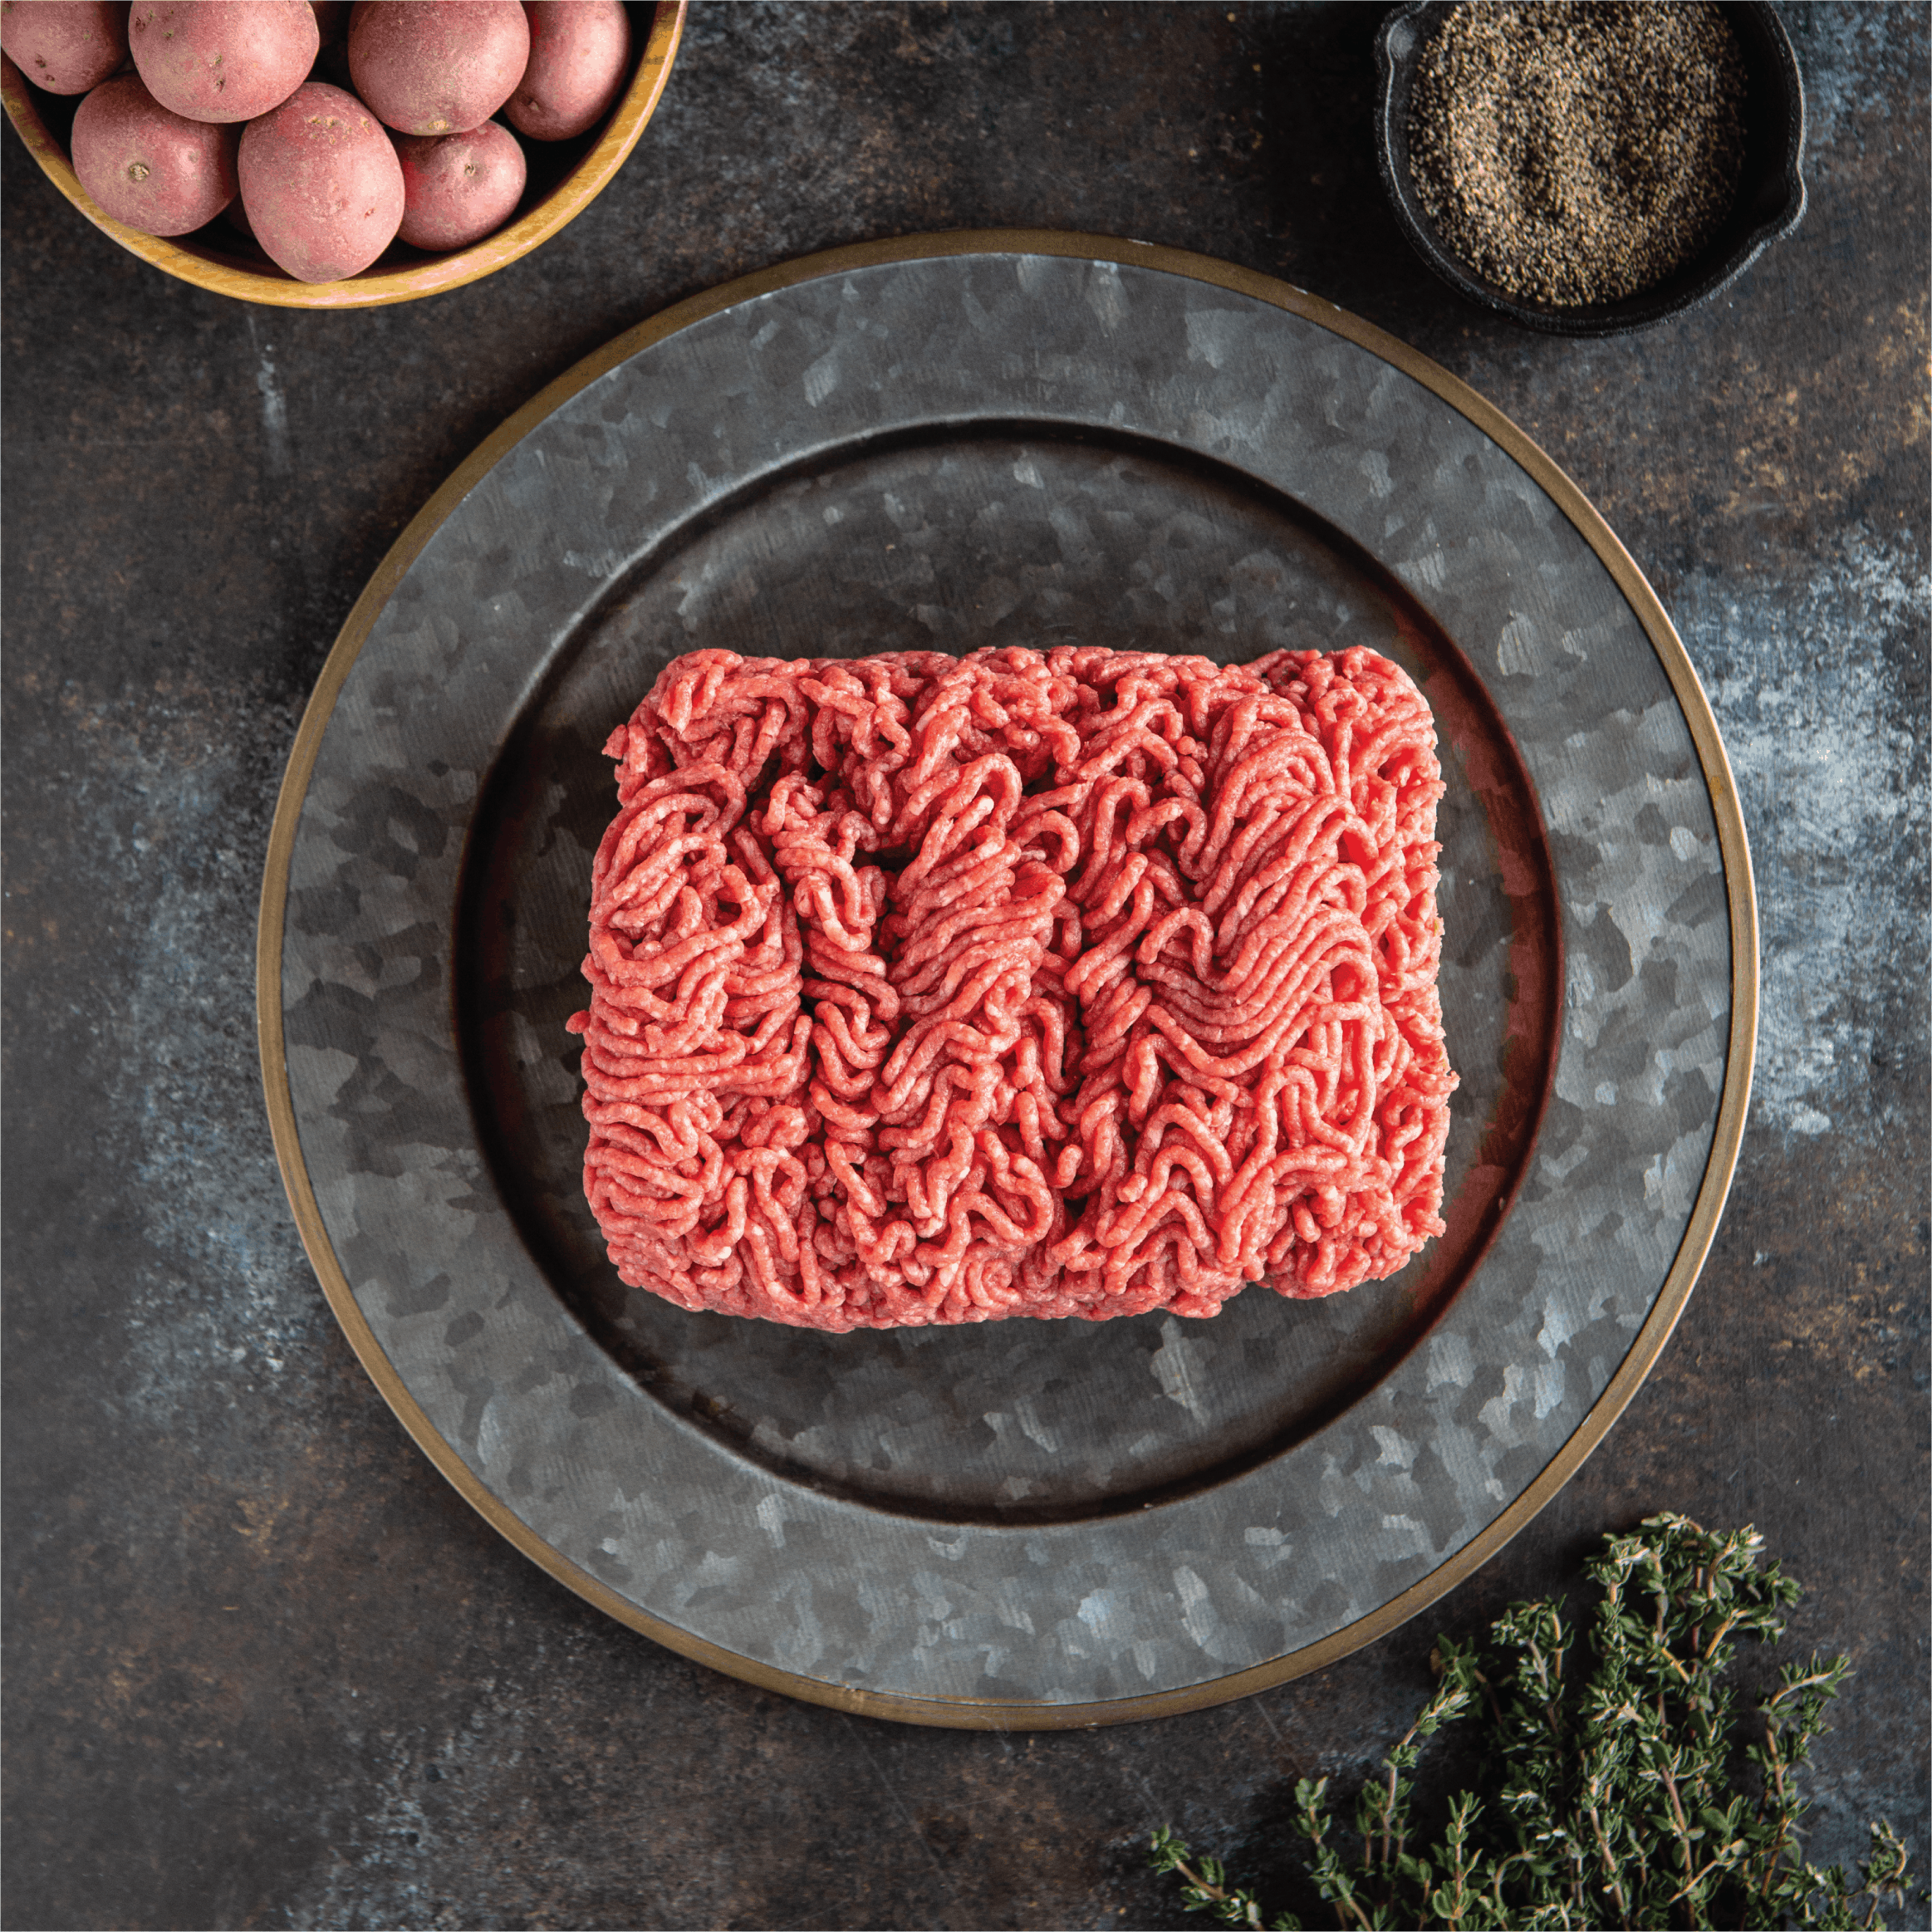 Crescent Foods Premium Halal Angus Lean Ground Beef on a plate